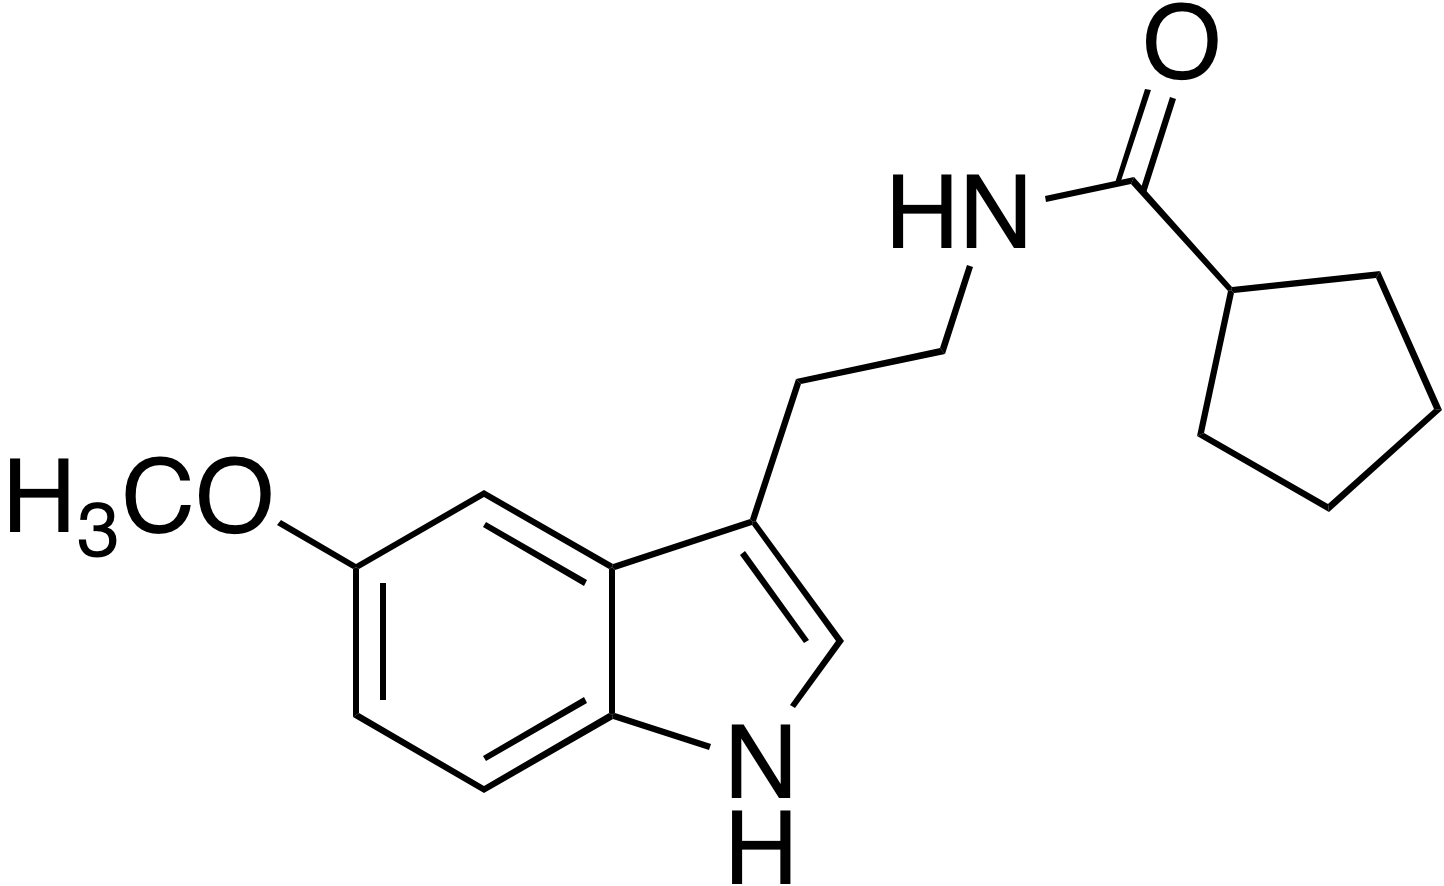 N-Cyclopentanoyl-5-methoxytryptamine